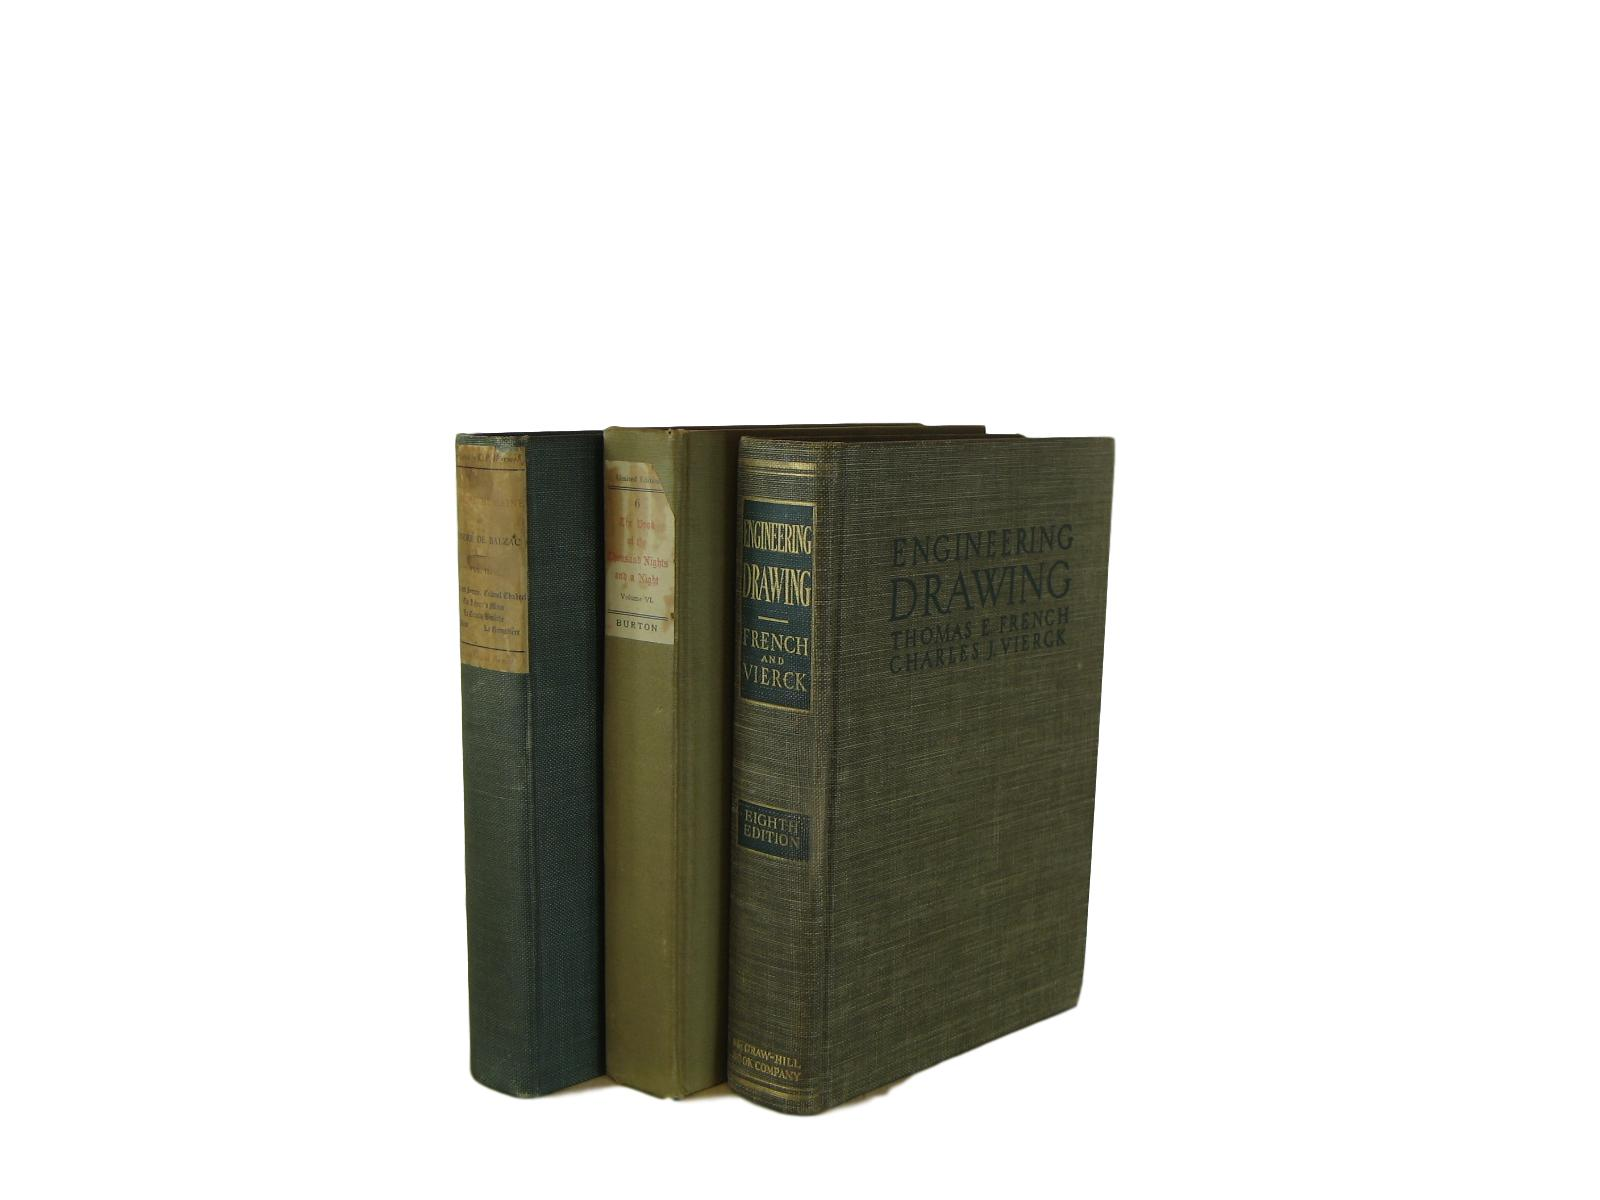 Vintage Decorative Book Accent Set in Green, S/3 - Decades of Vintage